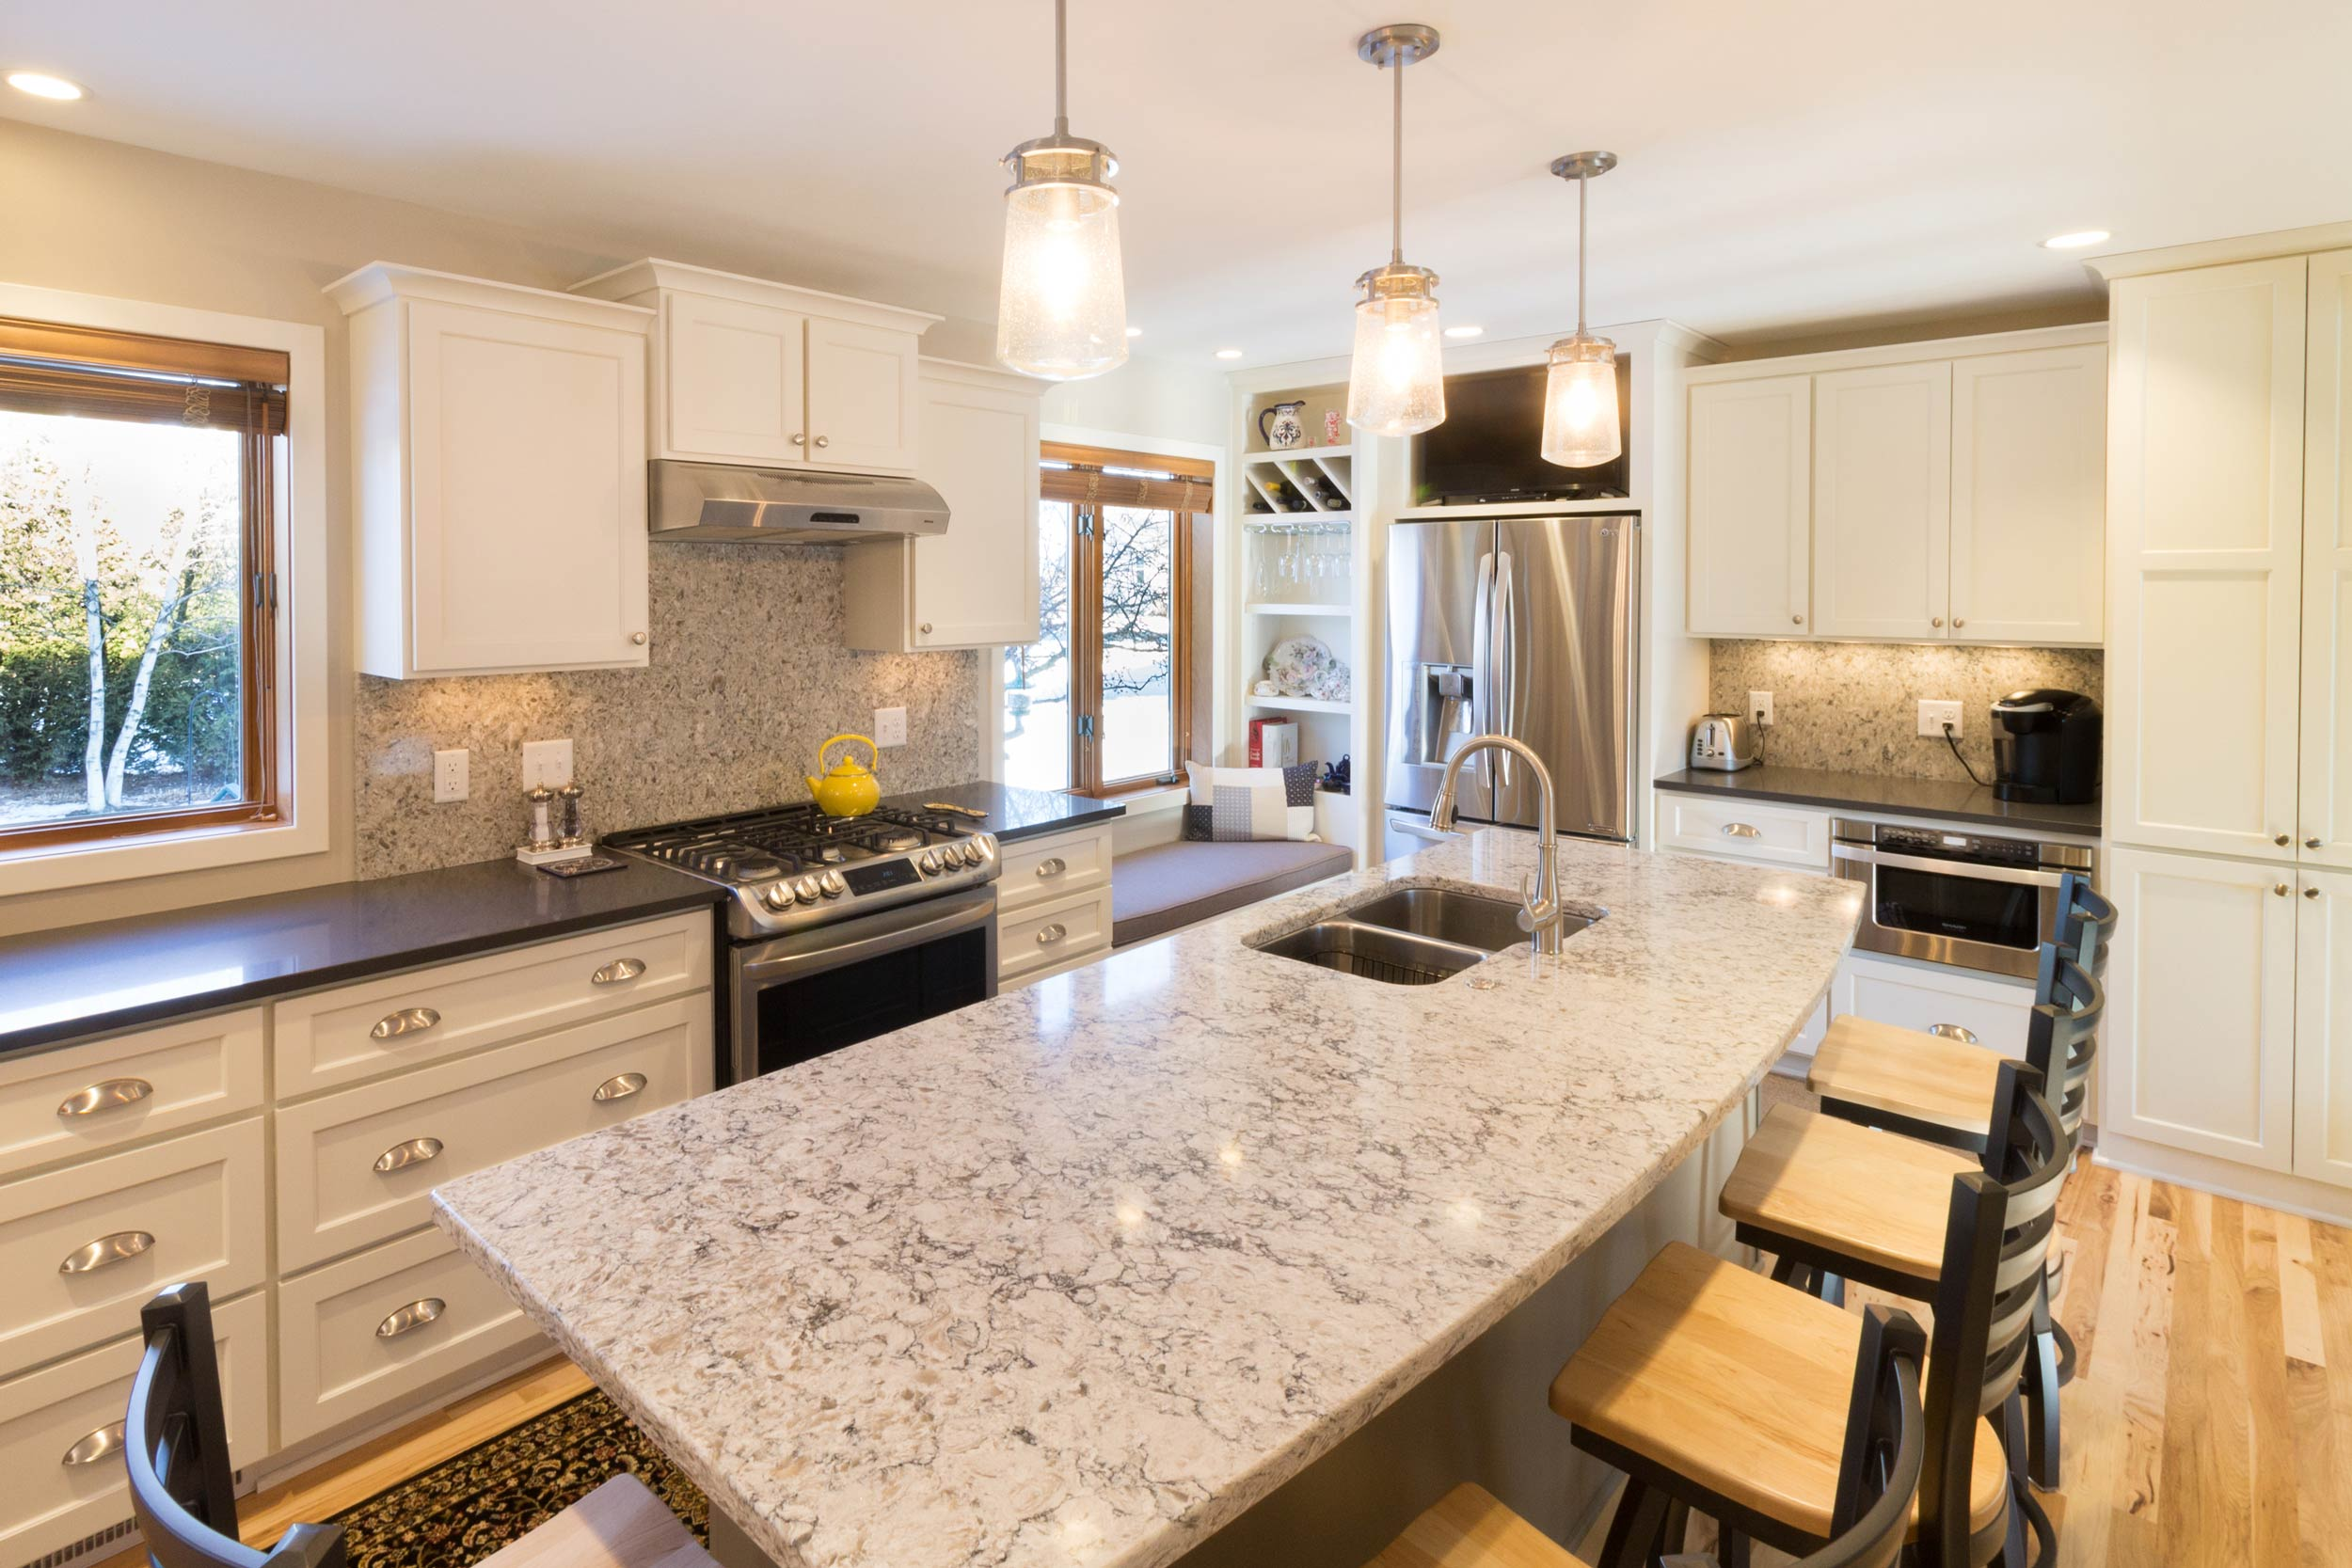 - Quartz countertop used as backsplash, matching the island top.